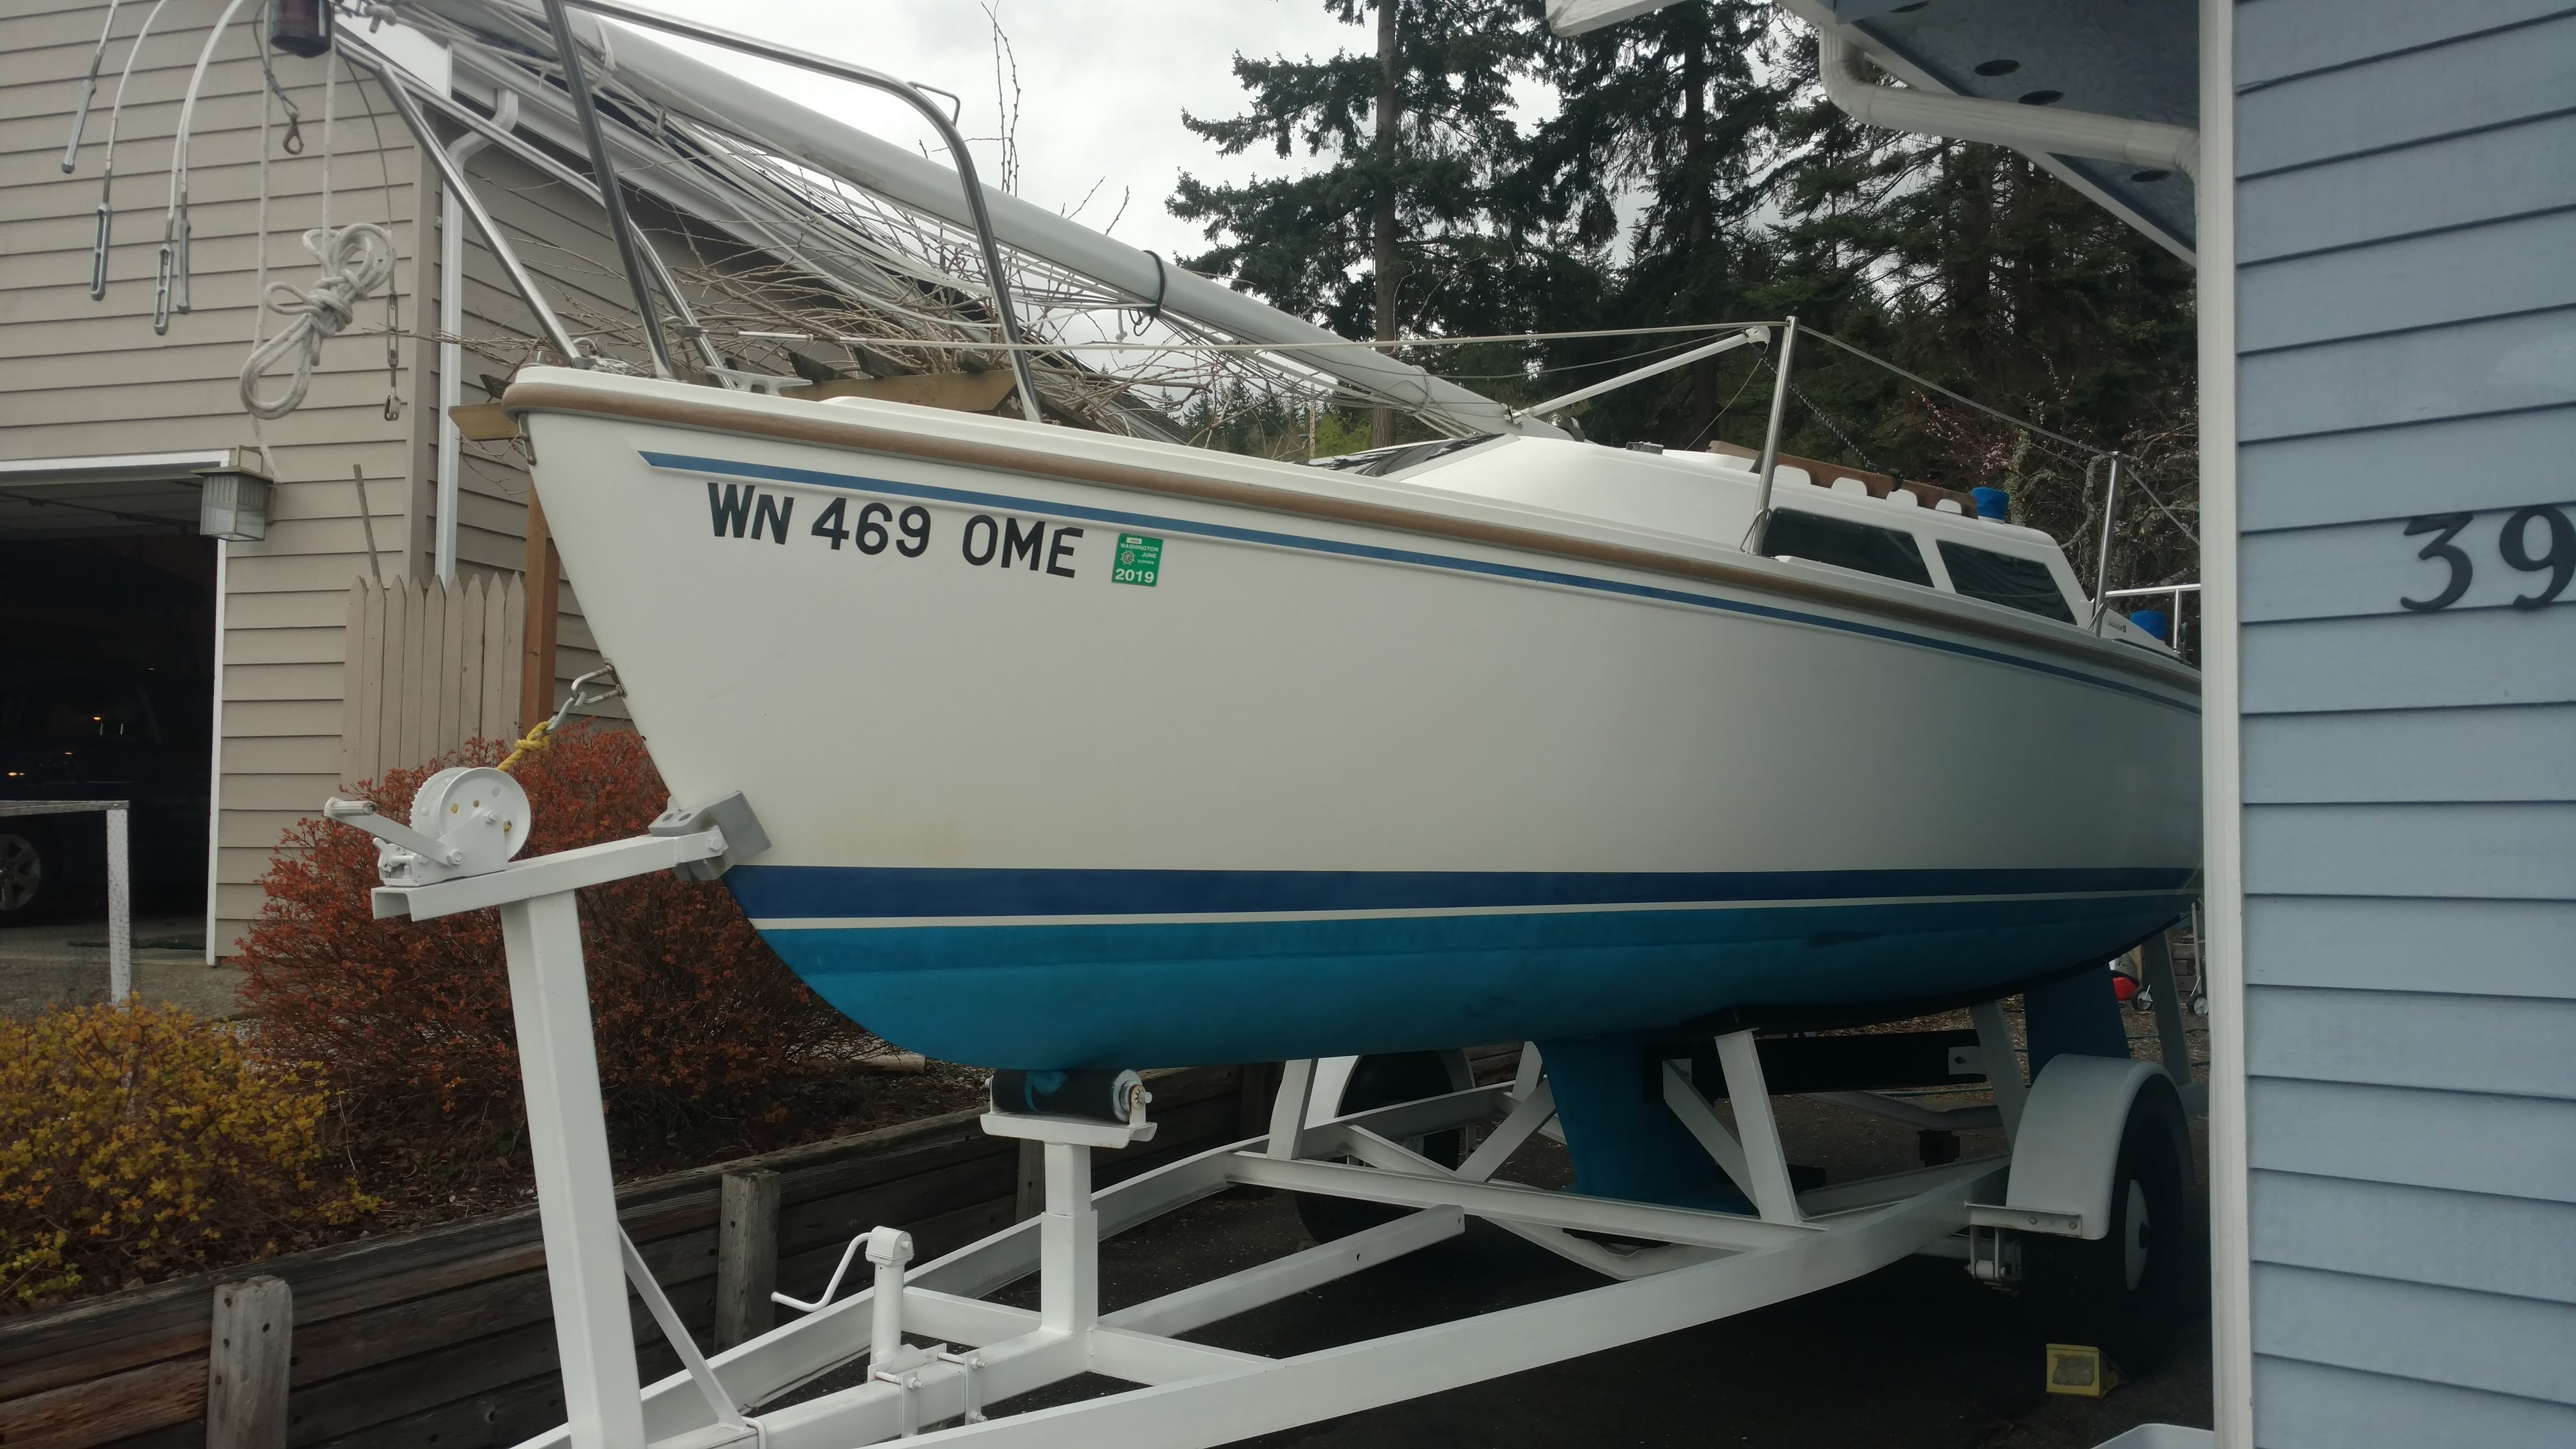 img_20190406_141420667-jpg.49846_New owner of a boat!_Boat Punk / Sailing_Squat the Planet_3:24 PM